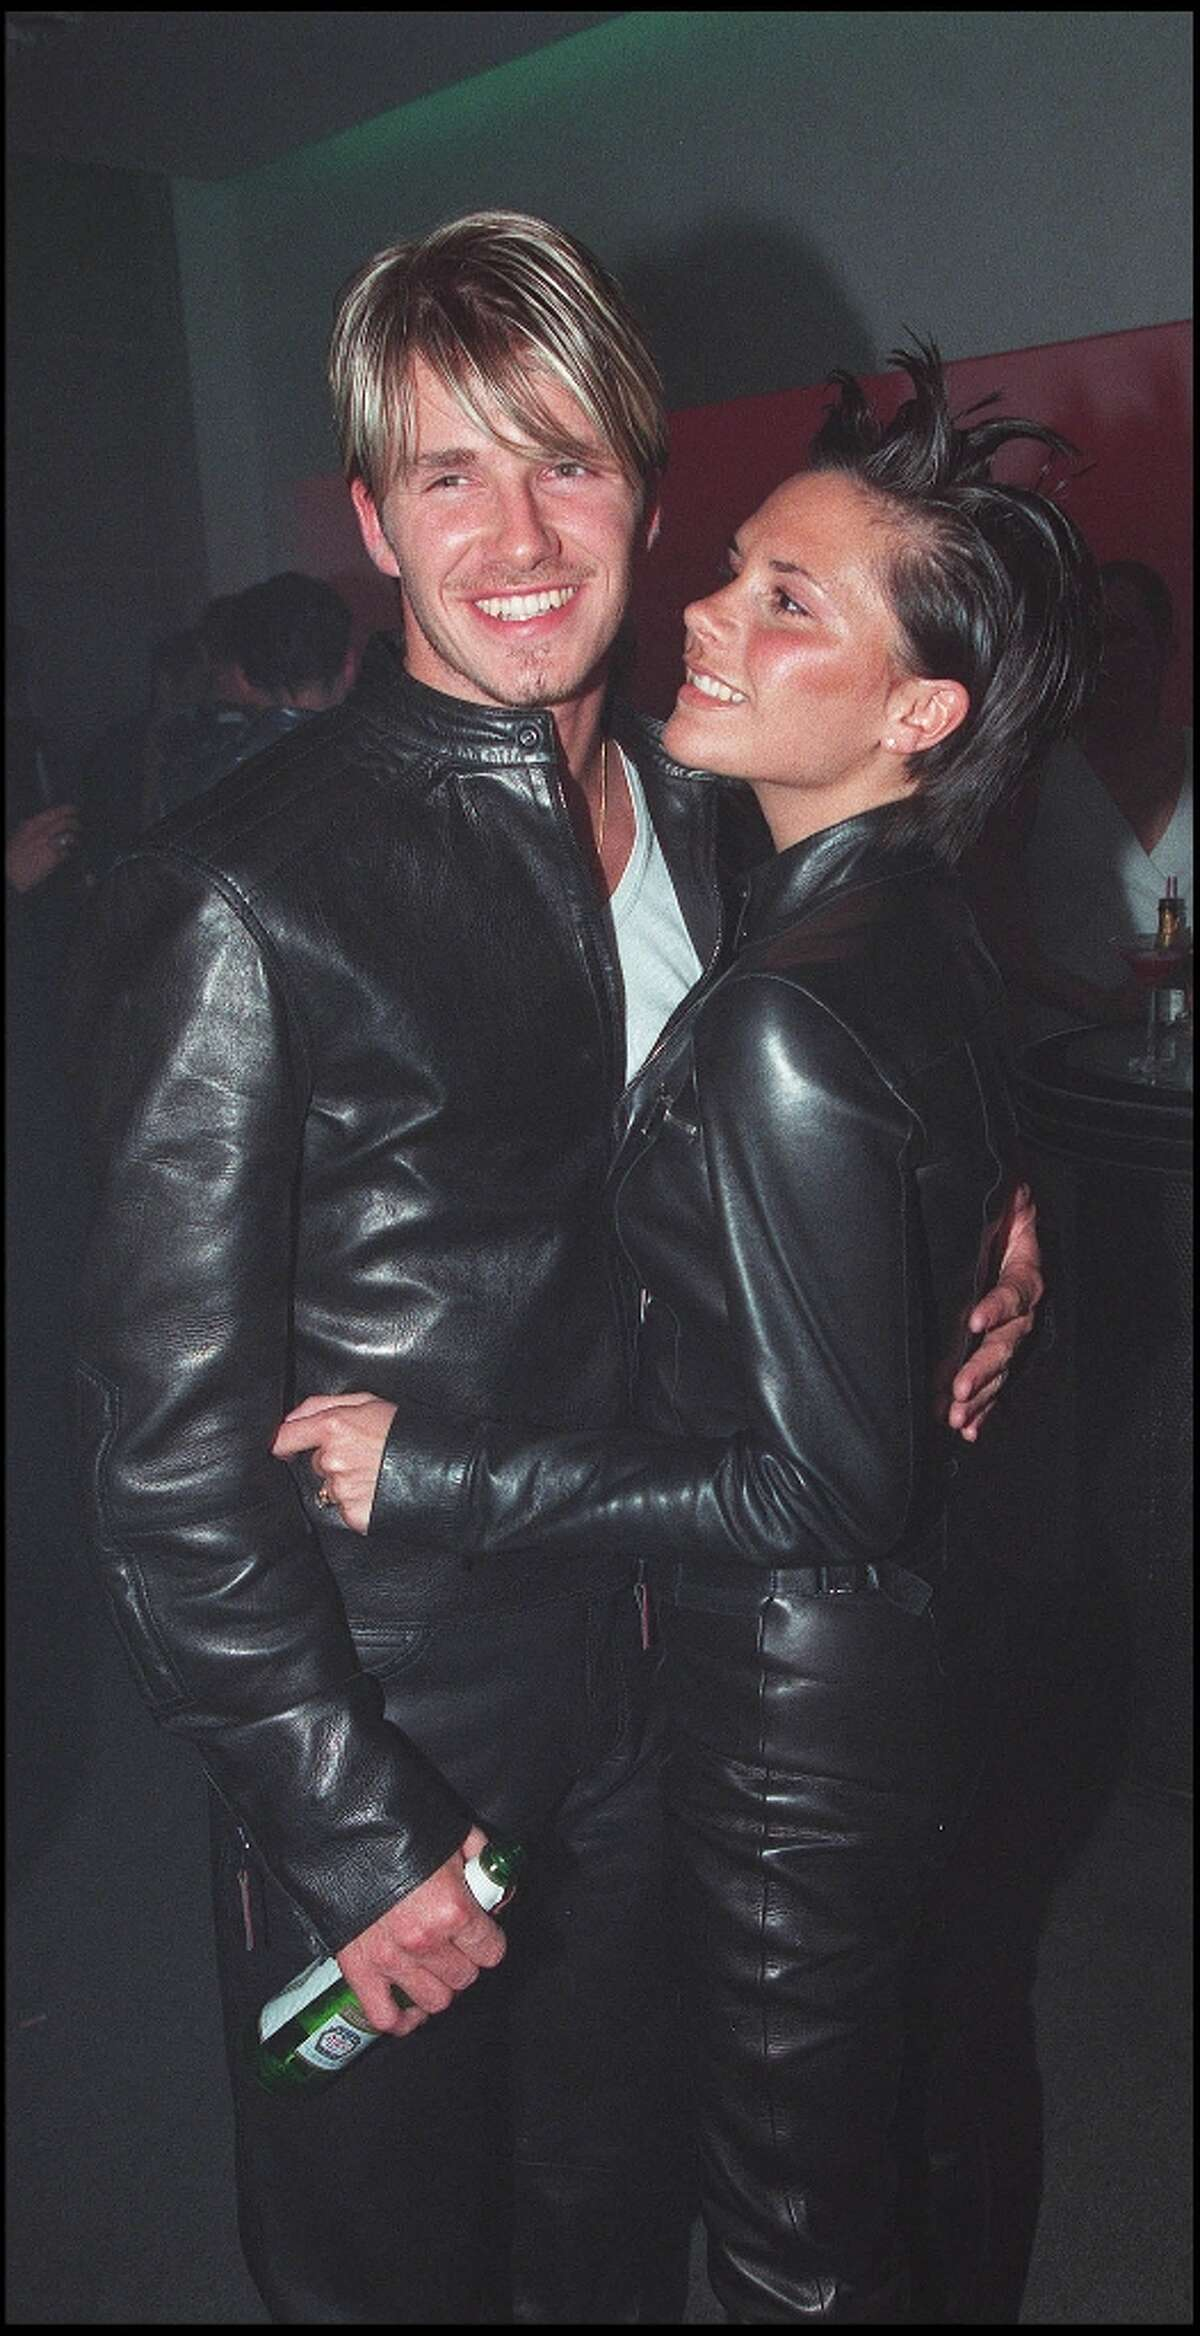 The Beckhams in 1999.